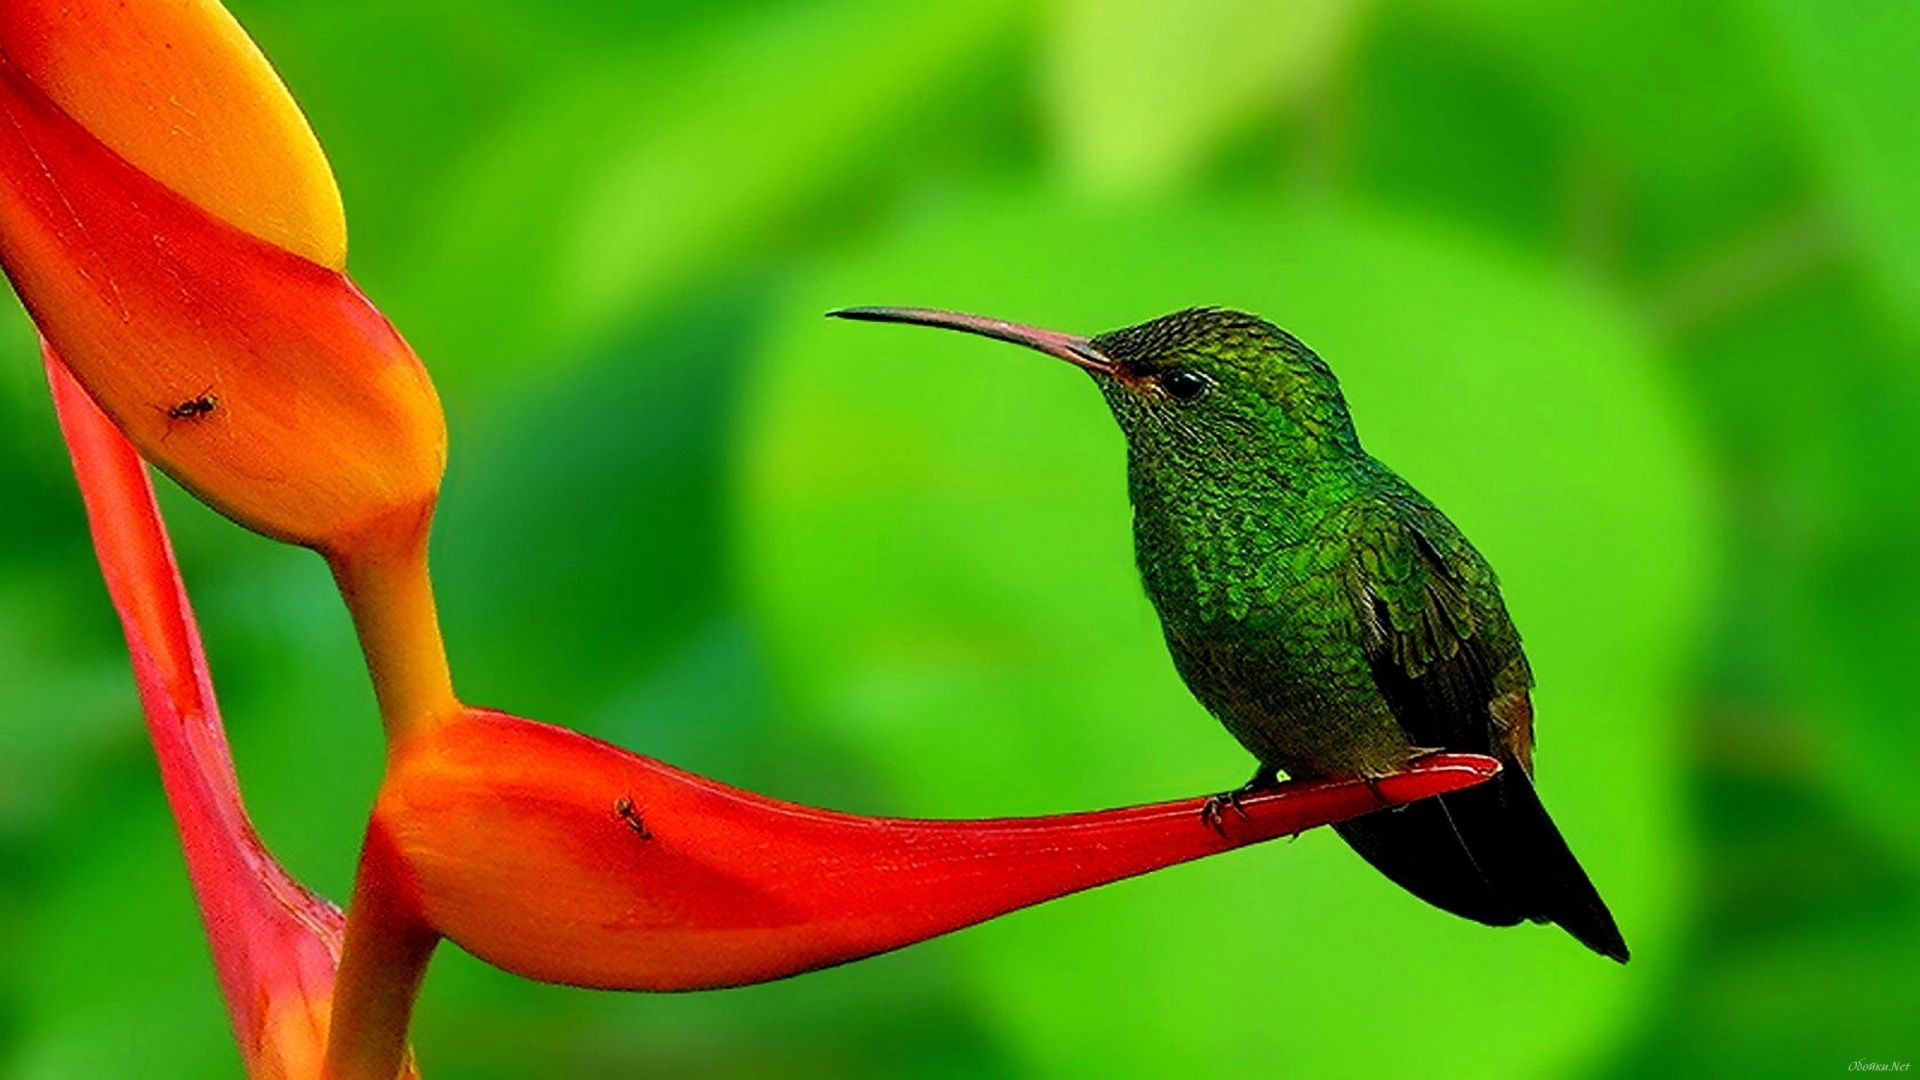 Dwnld Cute Little Bird Walpaper Free Fr Mobile: Humming Bird Hd Wallpapers 1080p